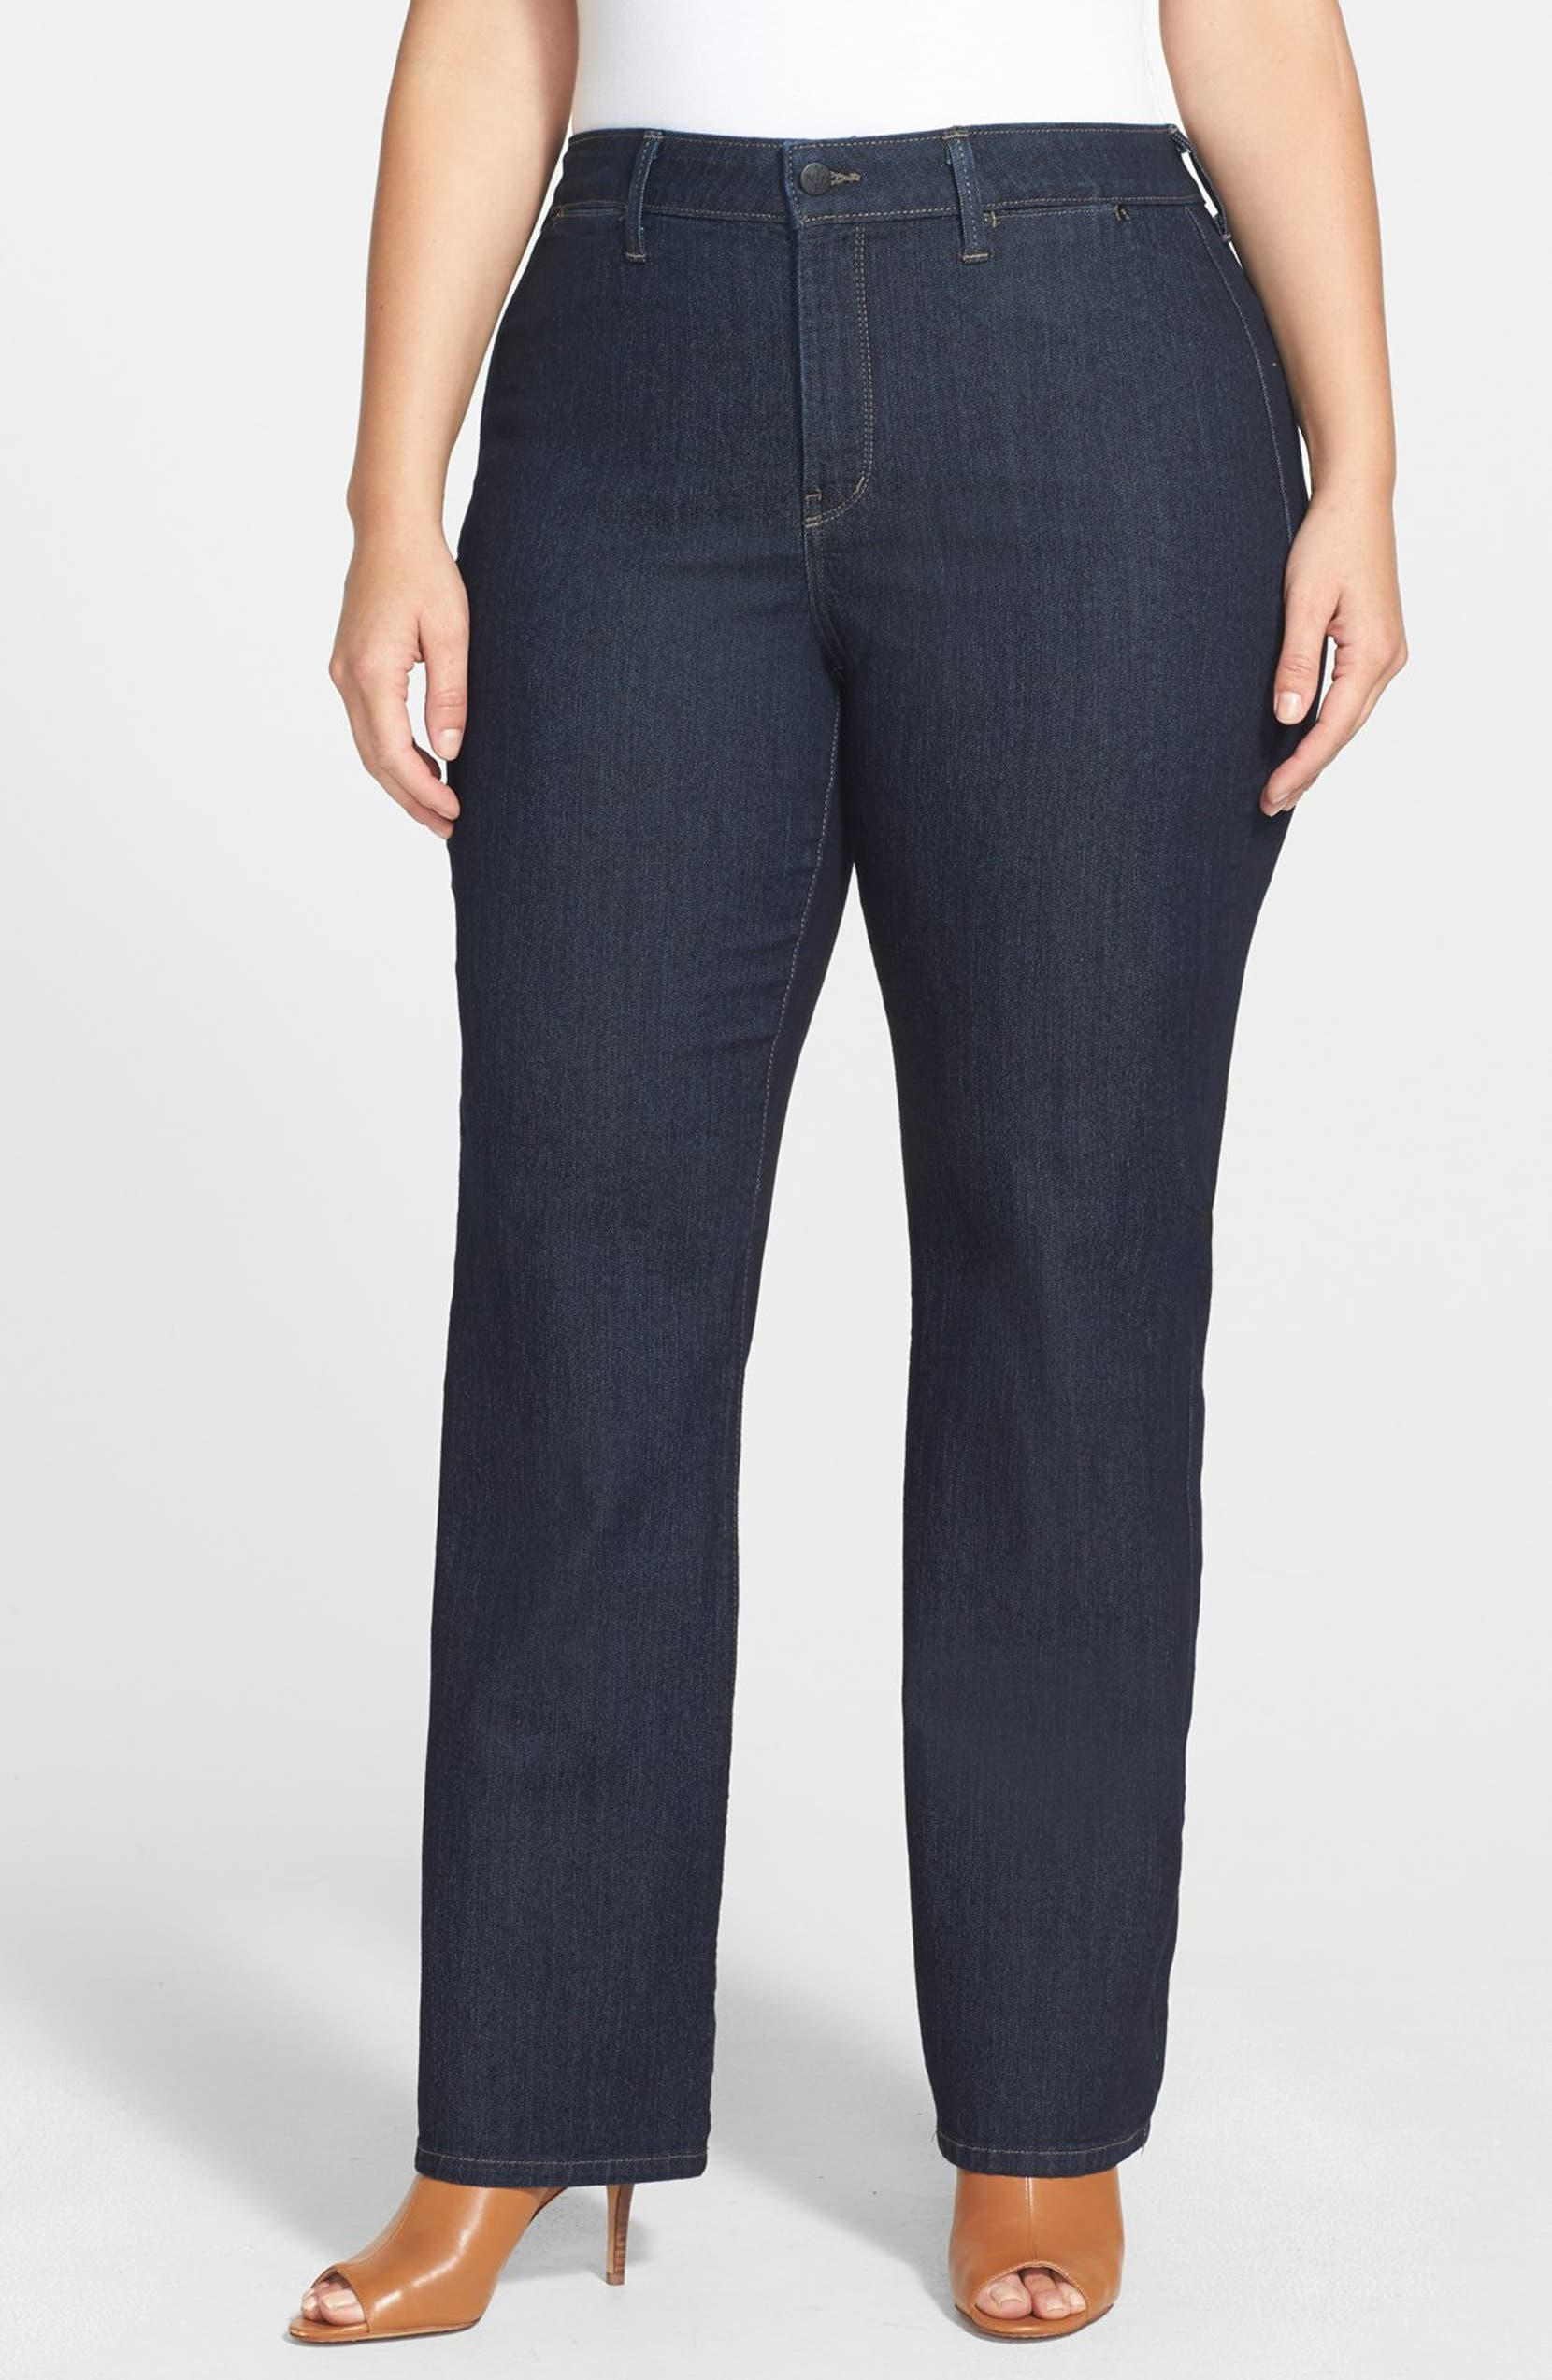 59e091f206ee8 NYDJ  Isabella  High Rise Stretch Trouser Jeans (Dark Enzyme) (Plus Size)